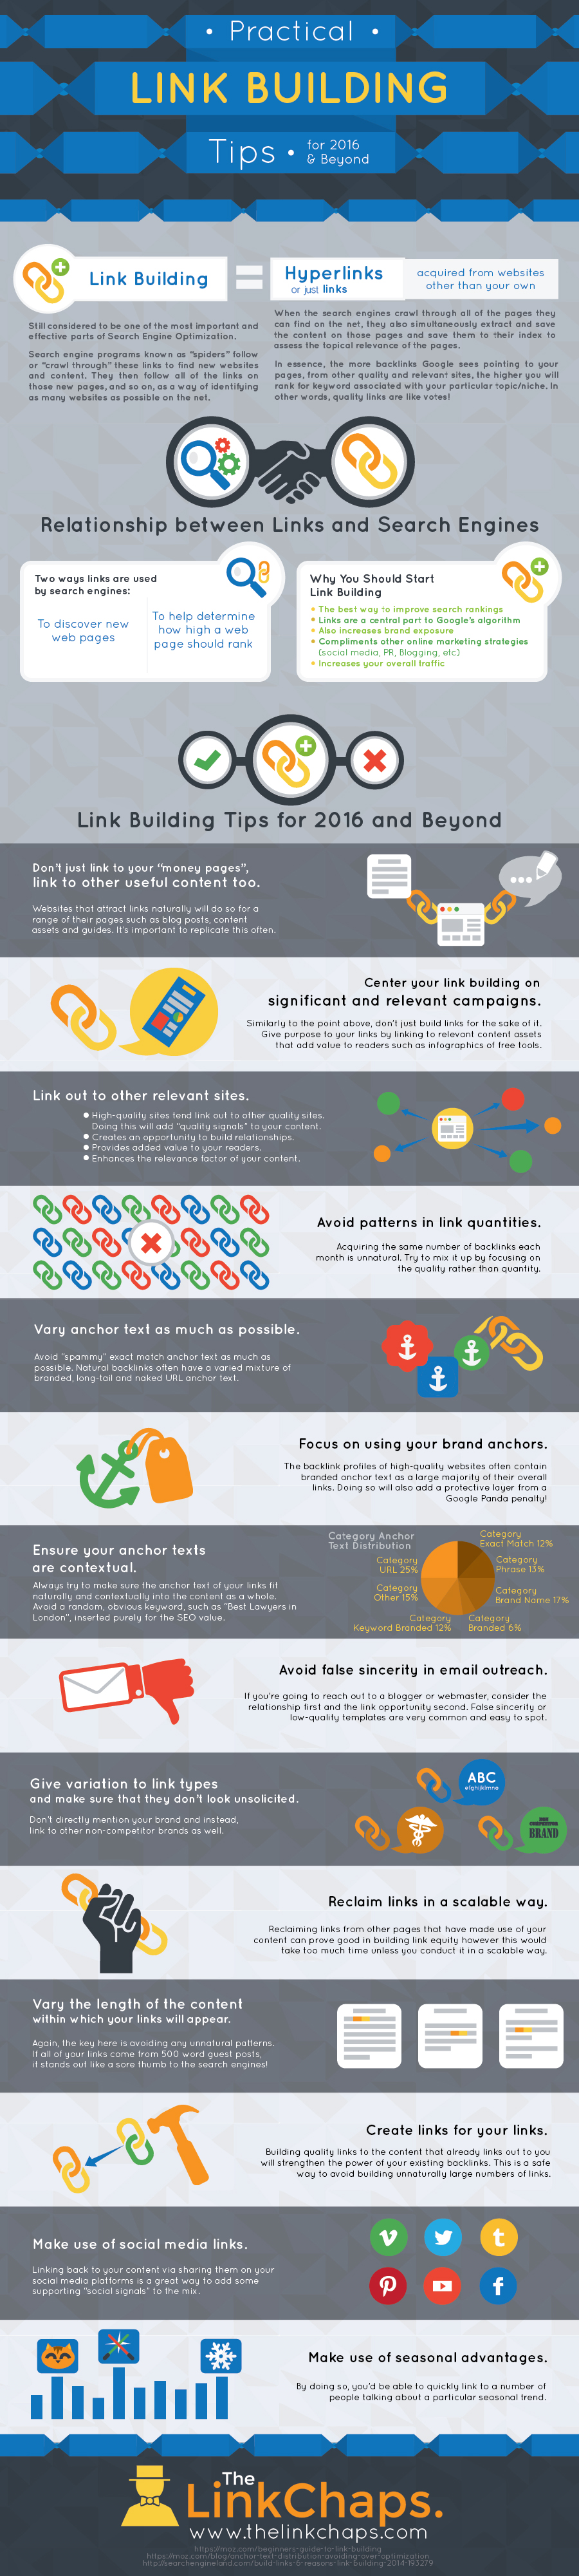 Link Building Tips Infographic | How to Build Links with ...